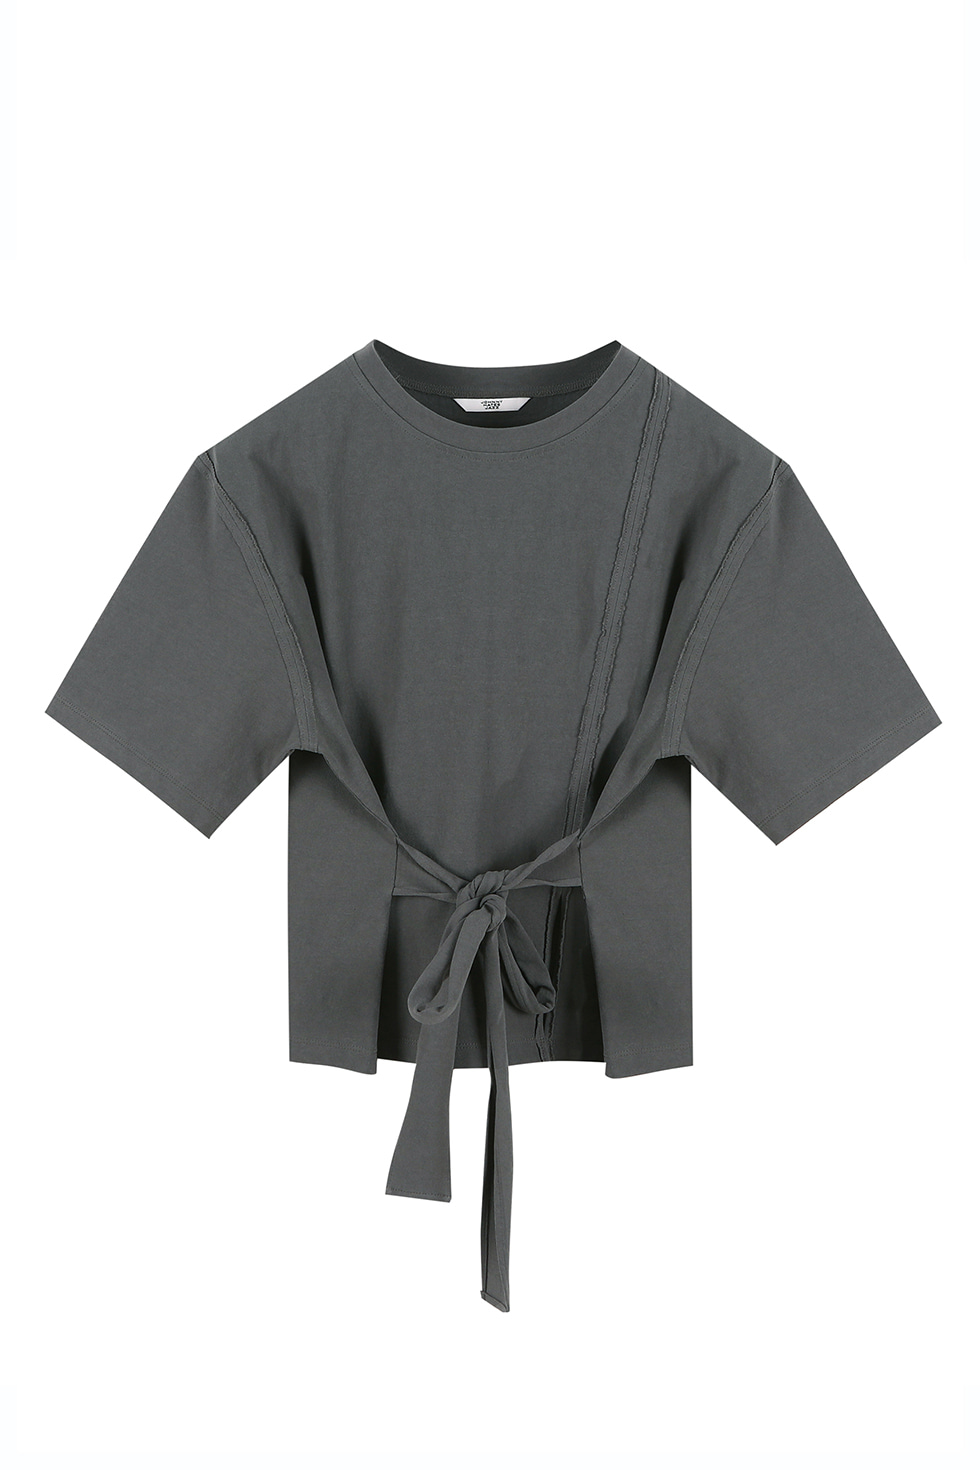 UNBALANCED JERSEY TOP - GREY